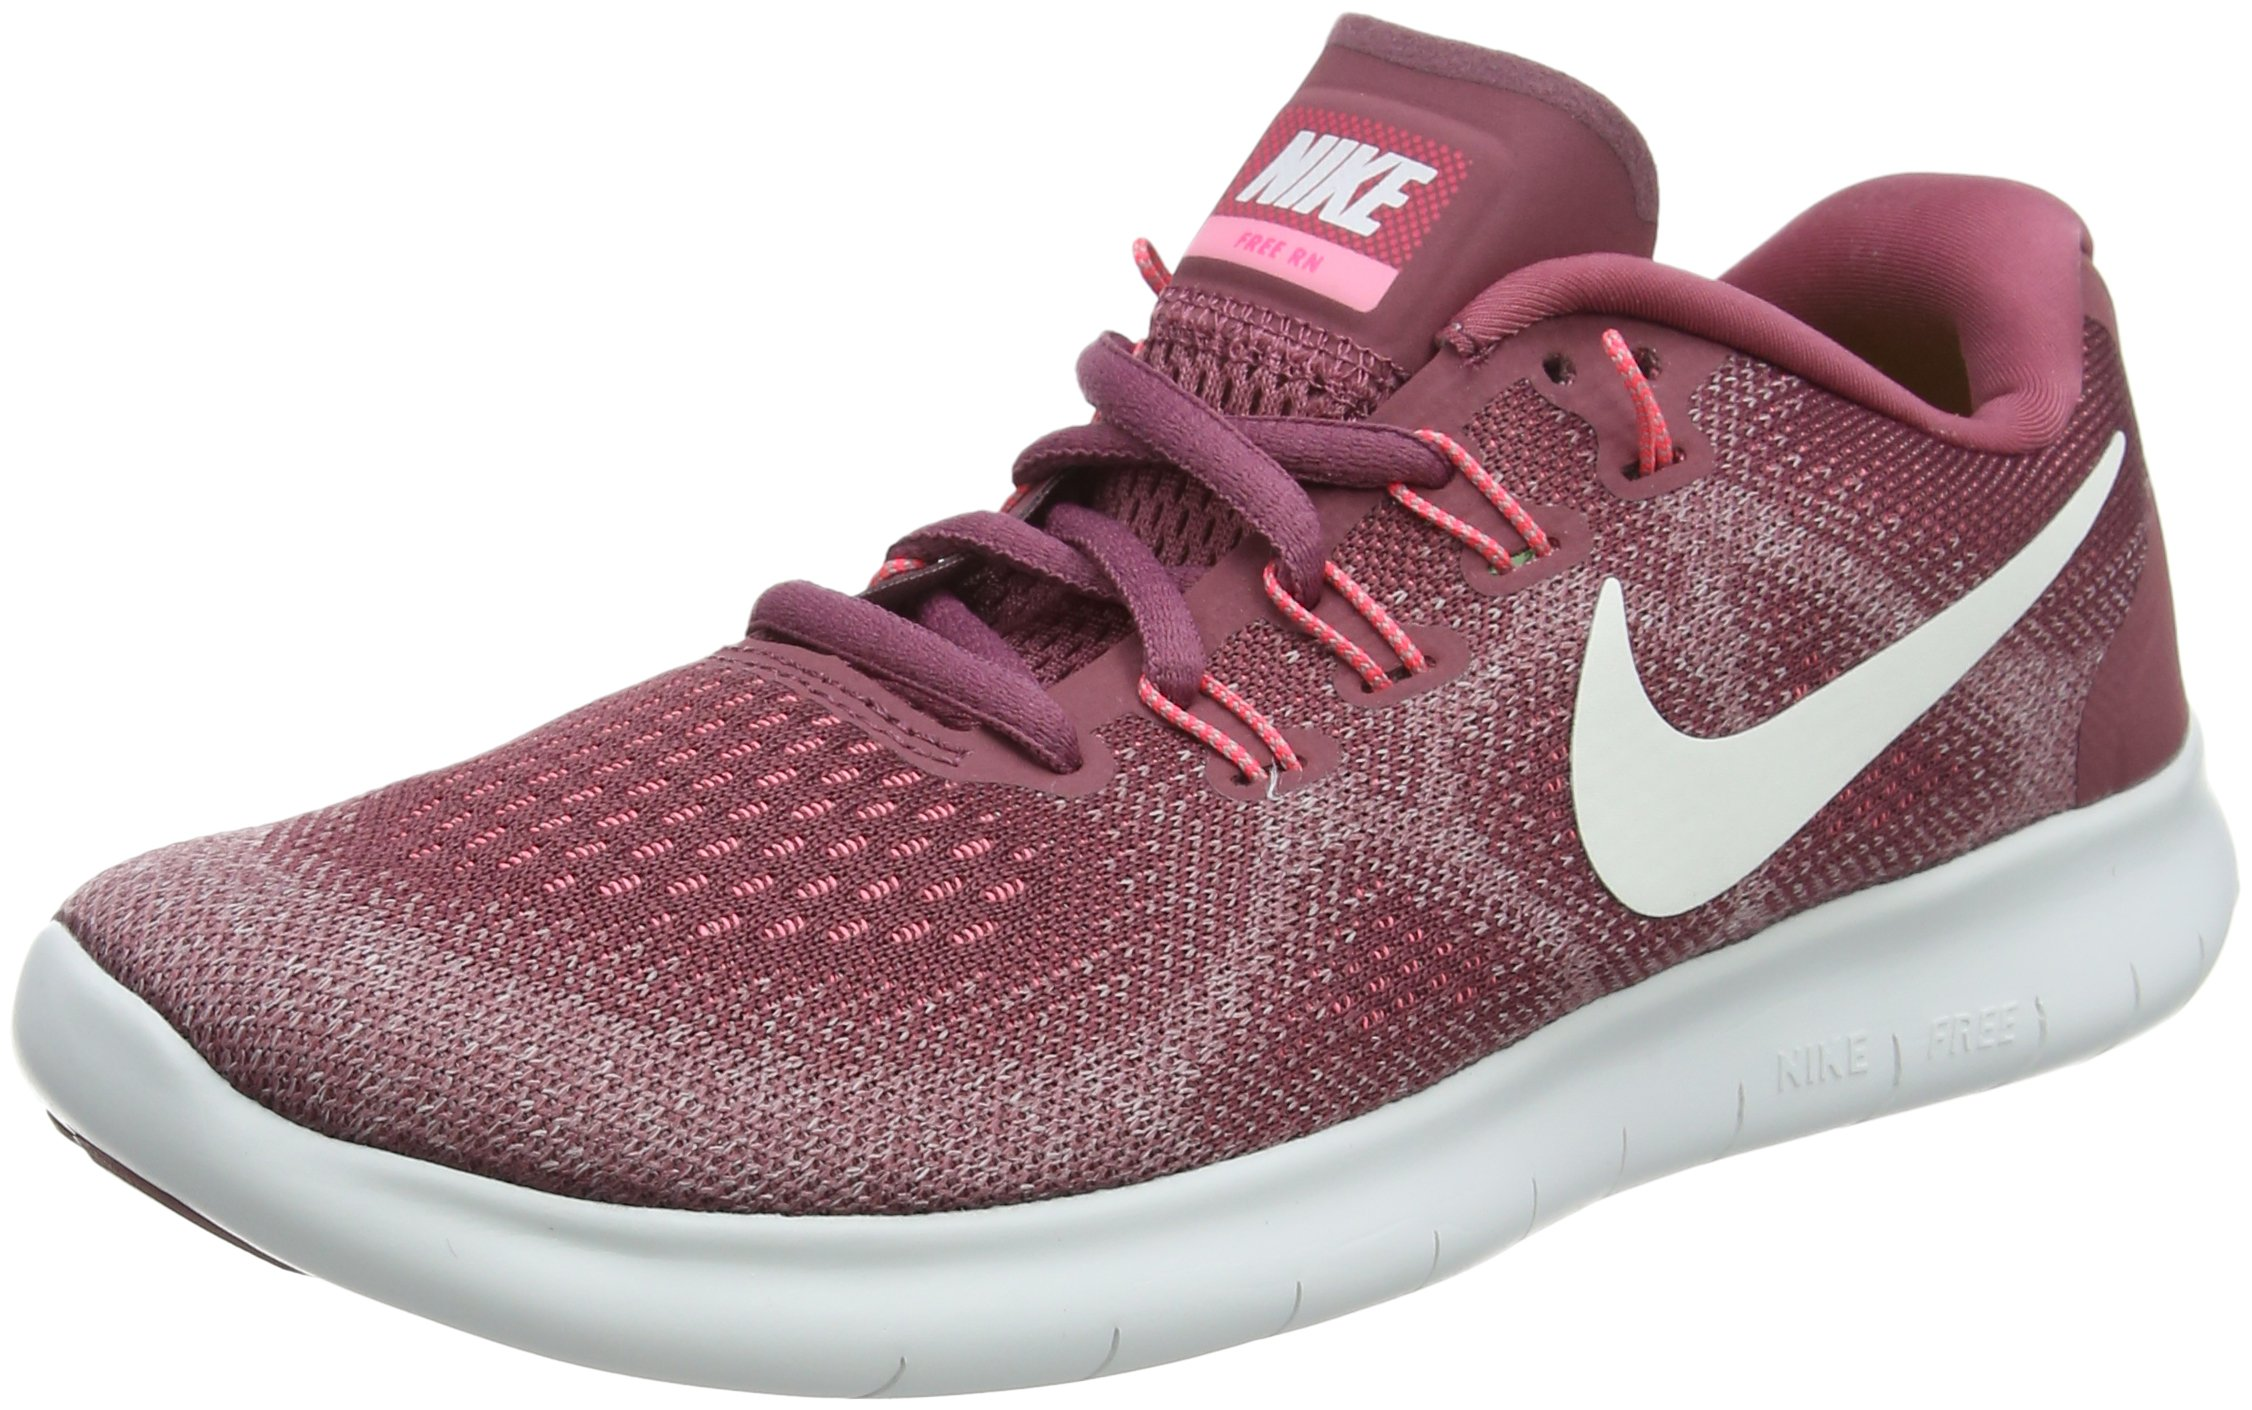 Nike Free RN 2017 Women's Running Shoes (5.5 M US, Vintage Wine/Off White)